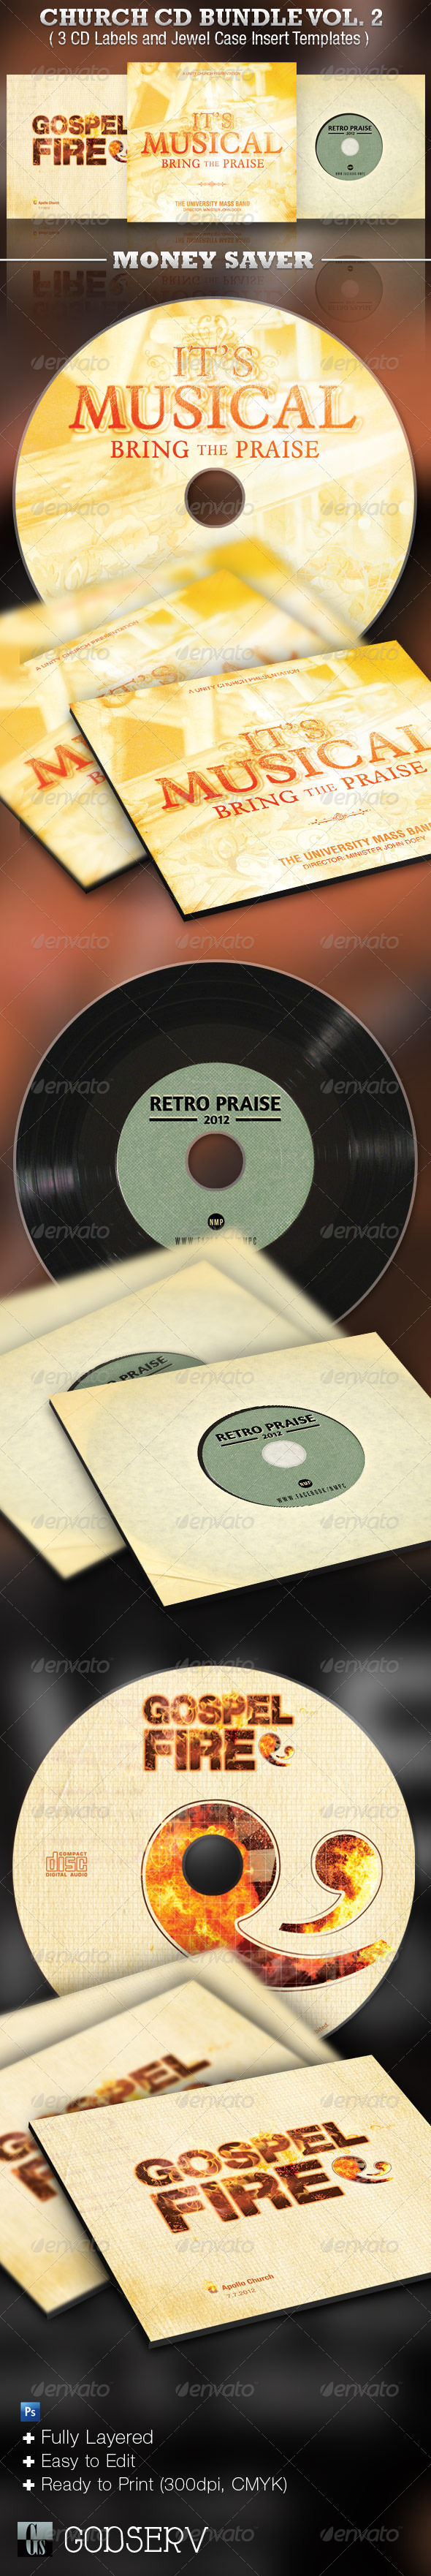 Church CD Template Bundle Vol 2 - CD & DVD Artwork Print Templates